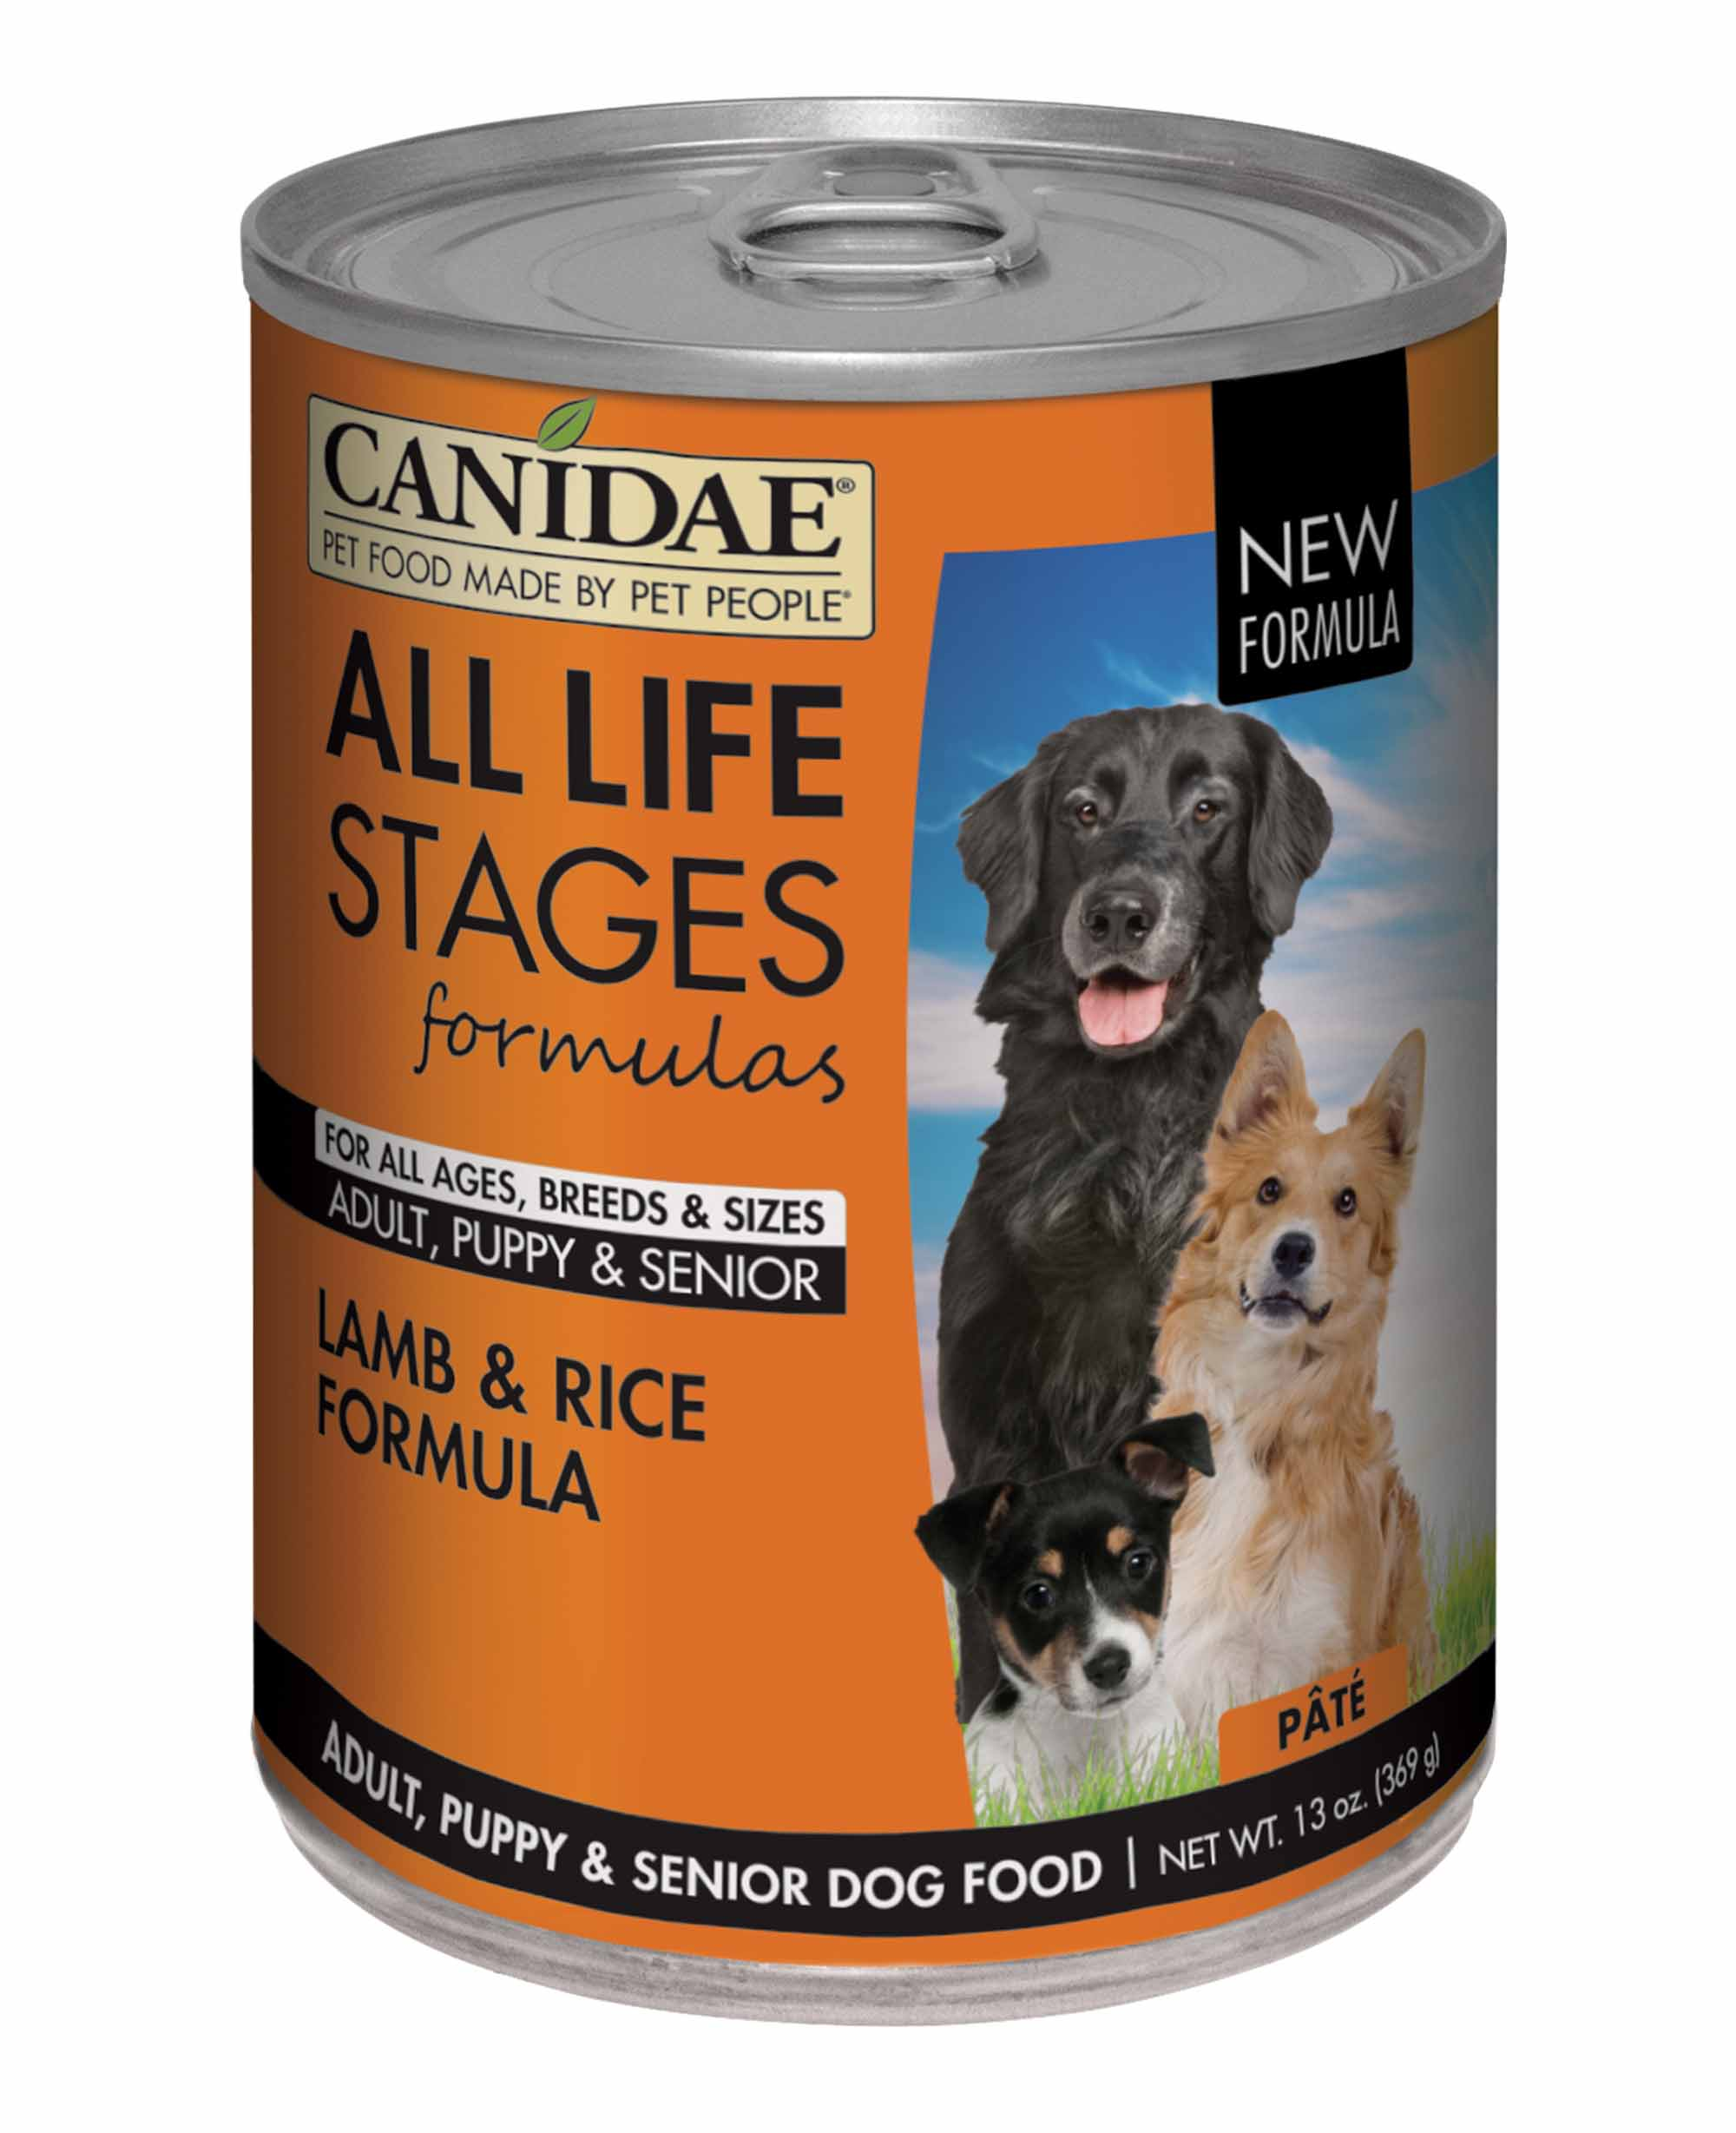 CANIDAE All Life Stages Dog Wet Food Lamb & Rice Formula, 13 oz